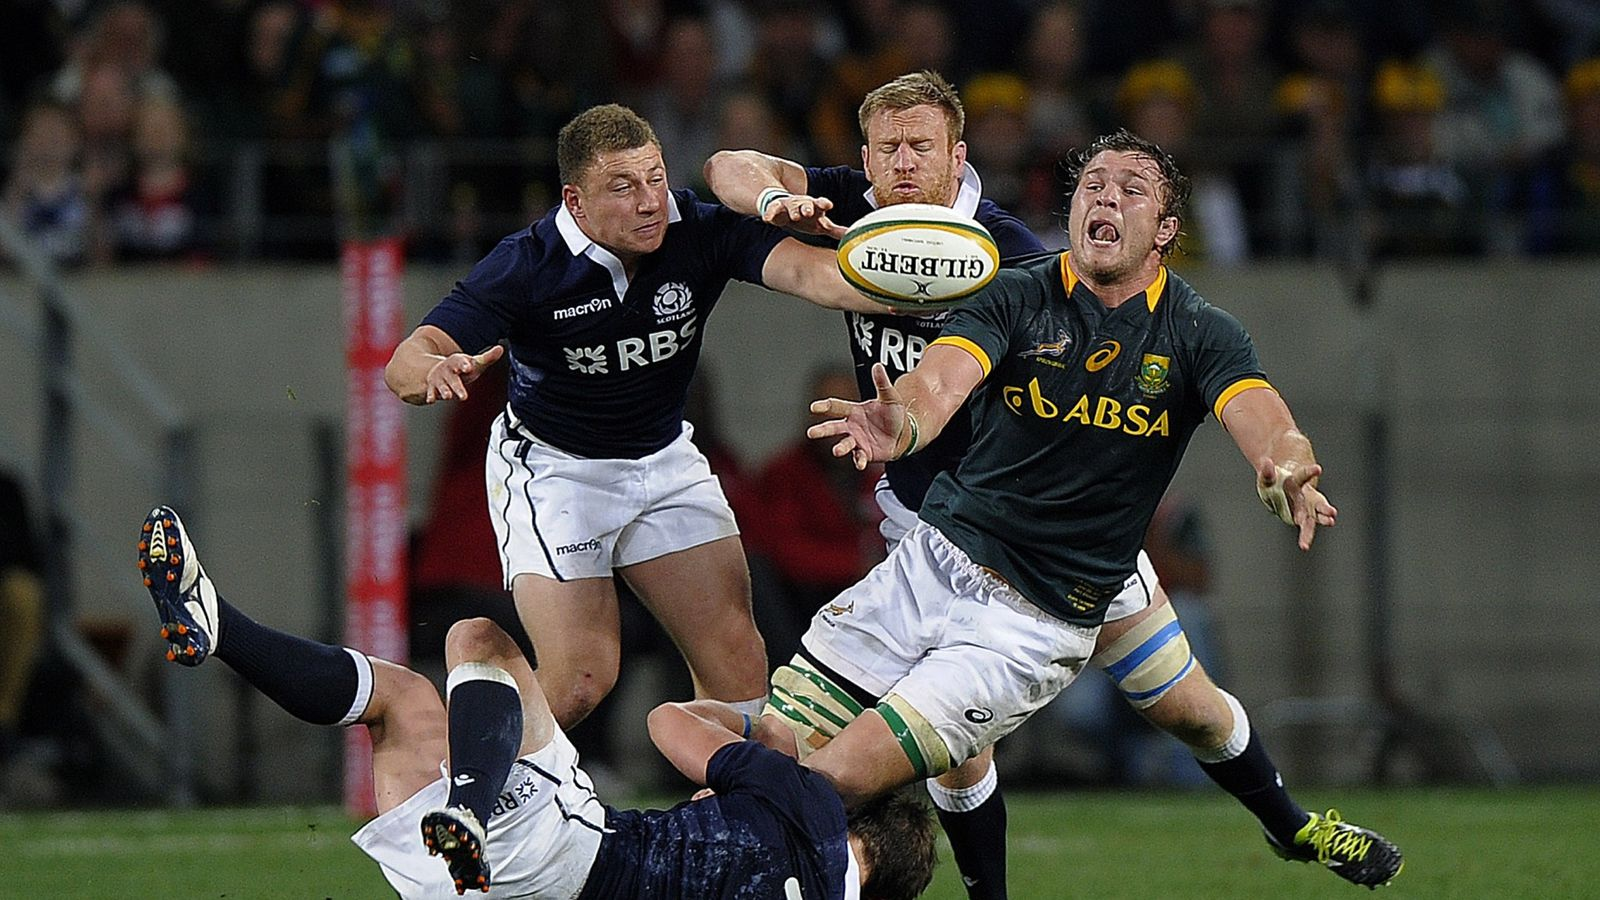 rugby duane vermeulen south africa 3349166.